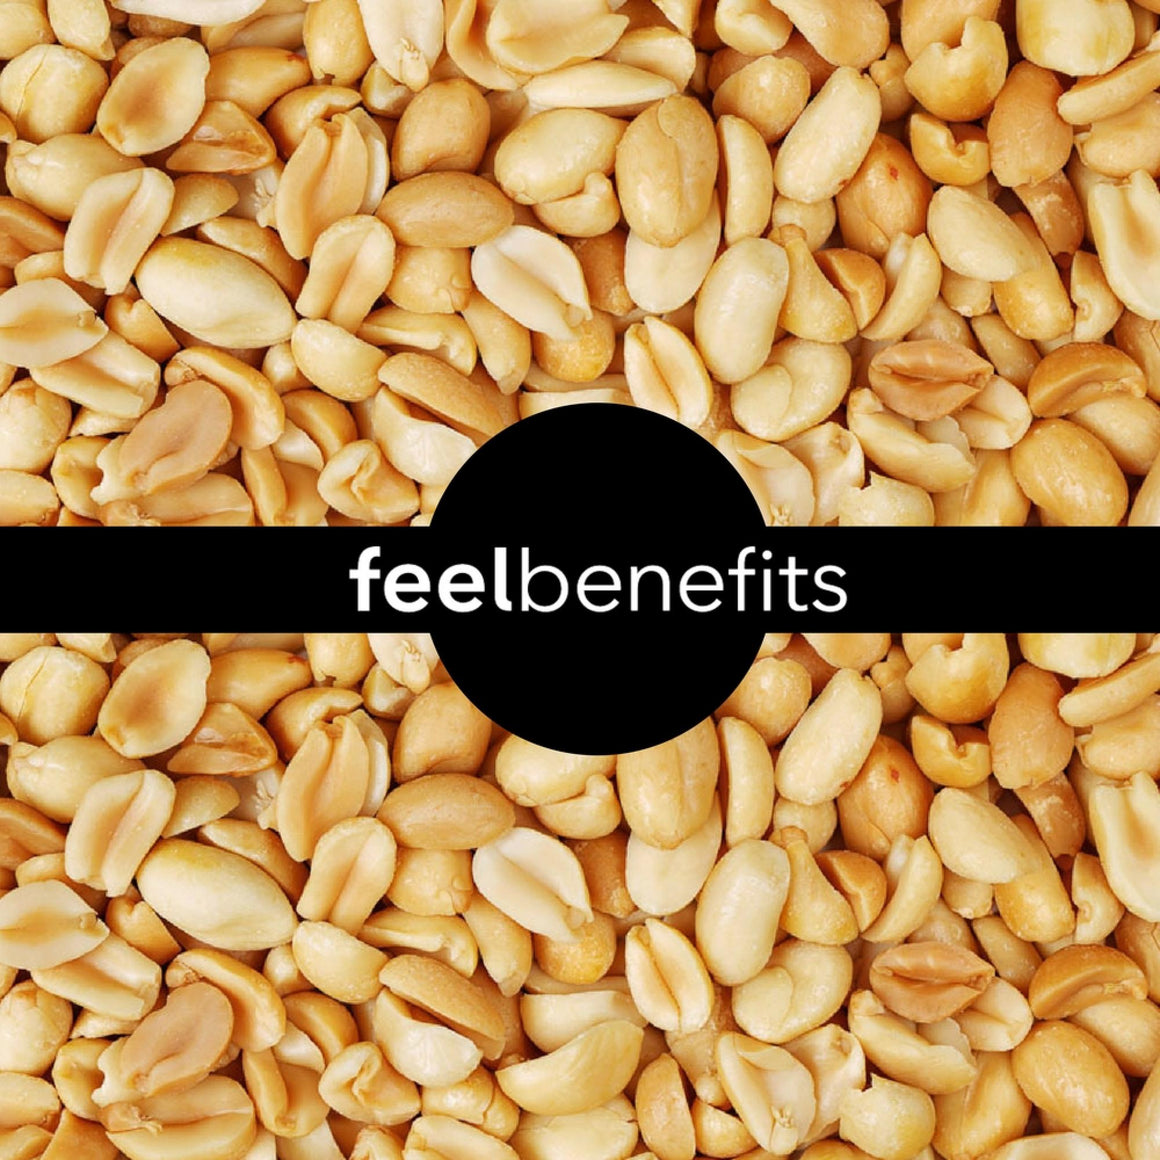 Amendoim Feel Benefits